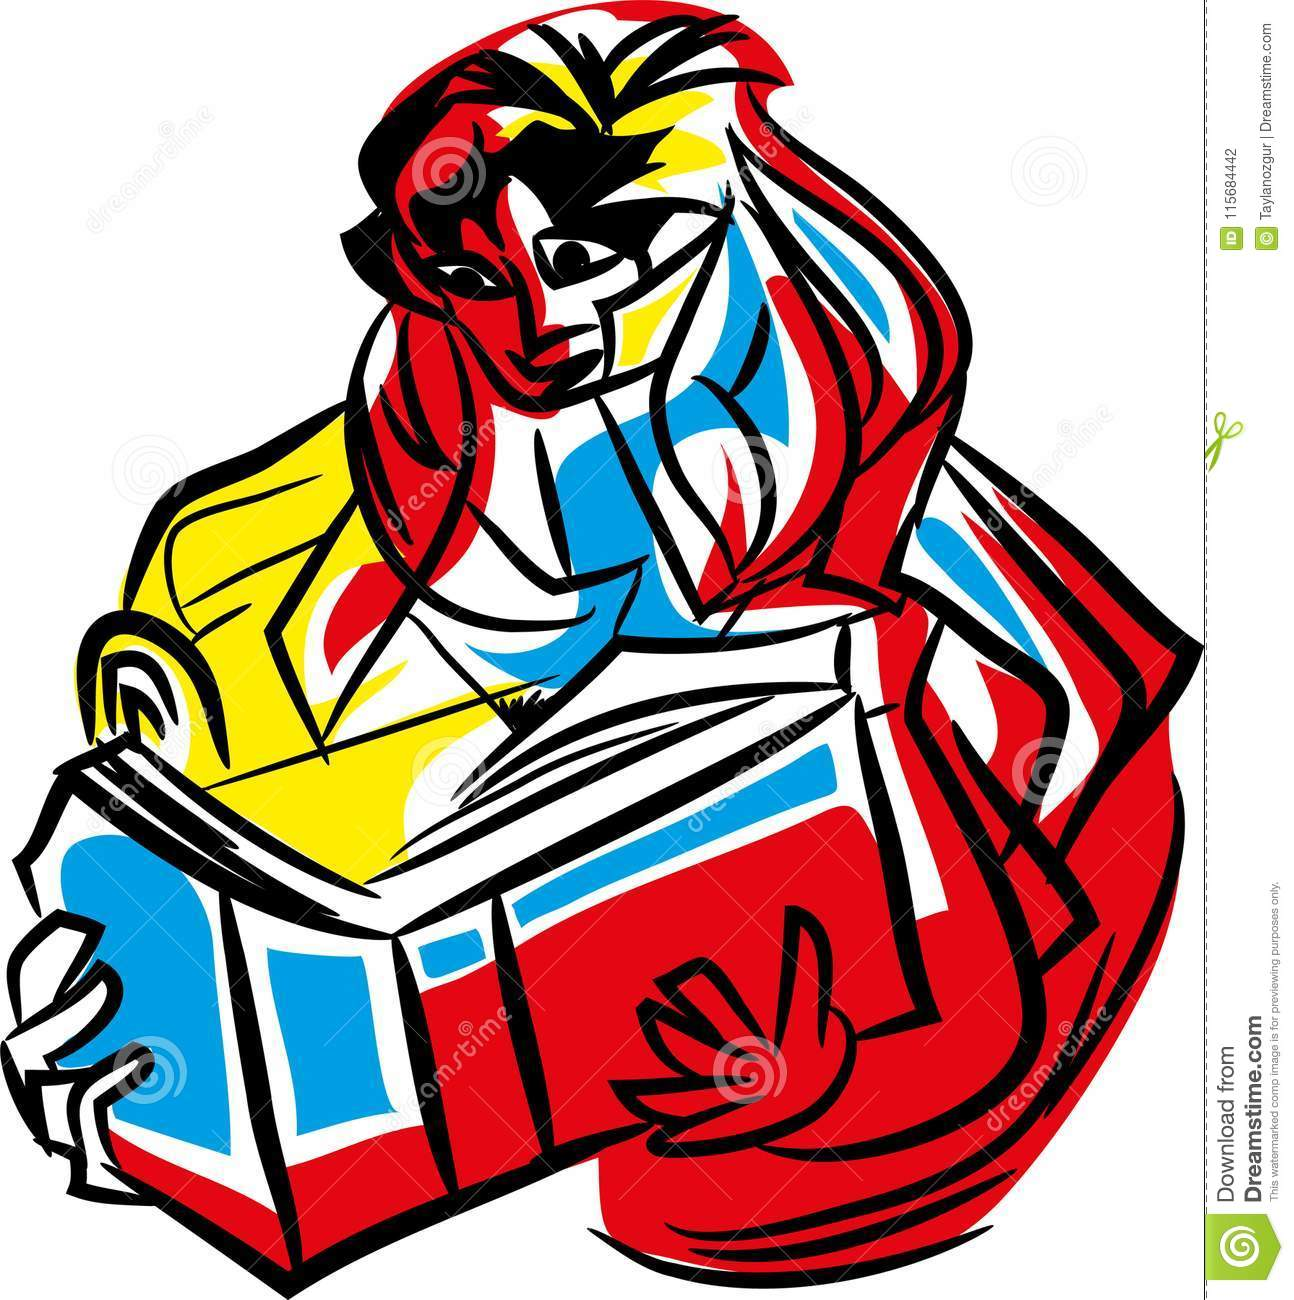 Interesting reading abstract colorful drawing isolated with white background